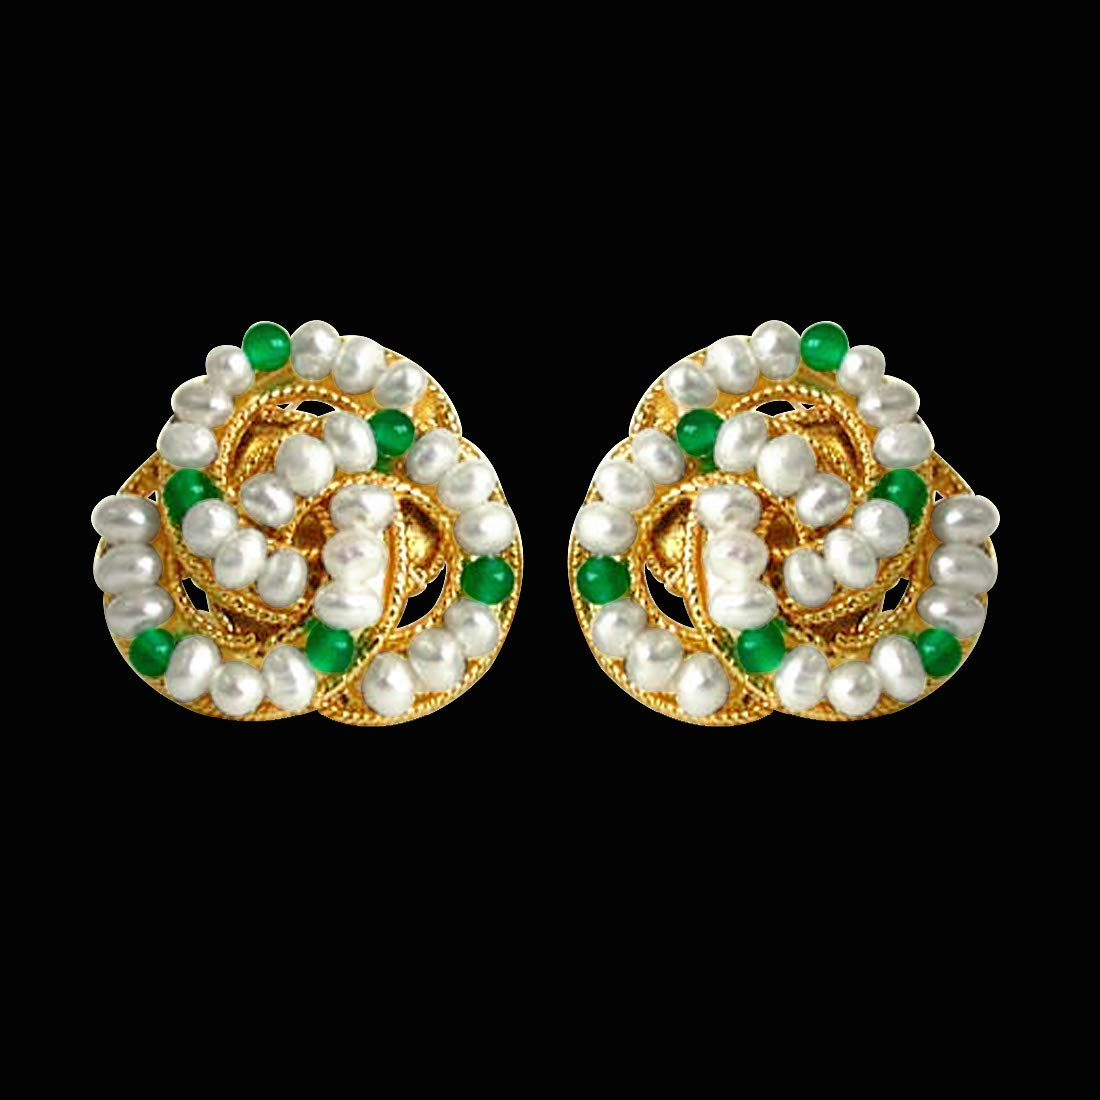 Green Fairy Queen - Real Freshwater Pearl, Green Onyx & Gold Plated Stud Earrings for Women (SE45)